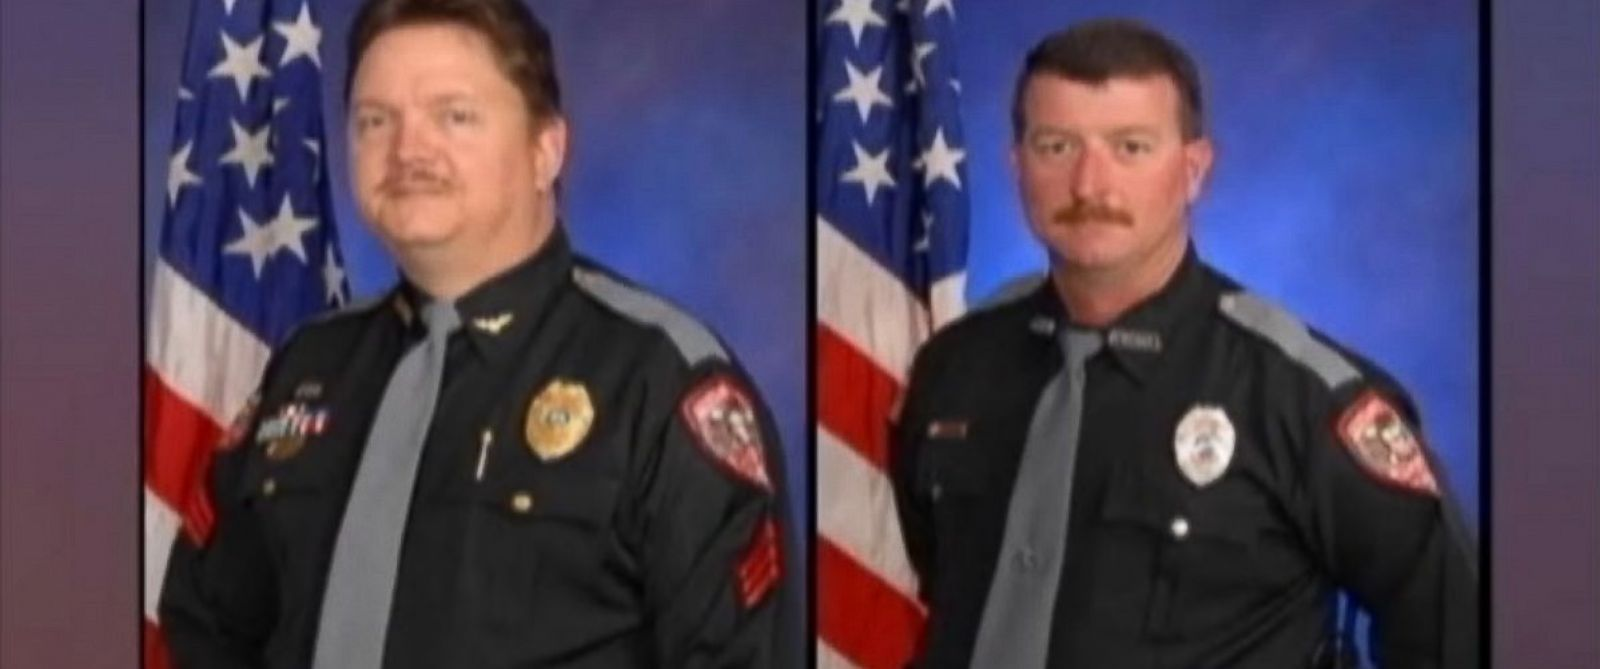 PHOTO: Two Fruitland Park polcie officers, David Borst, left, and George Hunnewell, right, are under investigation by the Florida Department of Law Enforcement for their alleged involvement in the Ku Klux Klan.